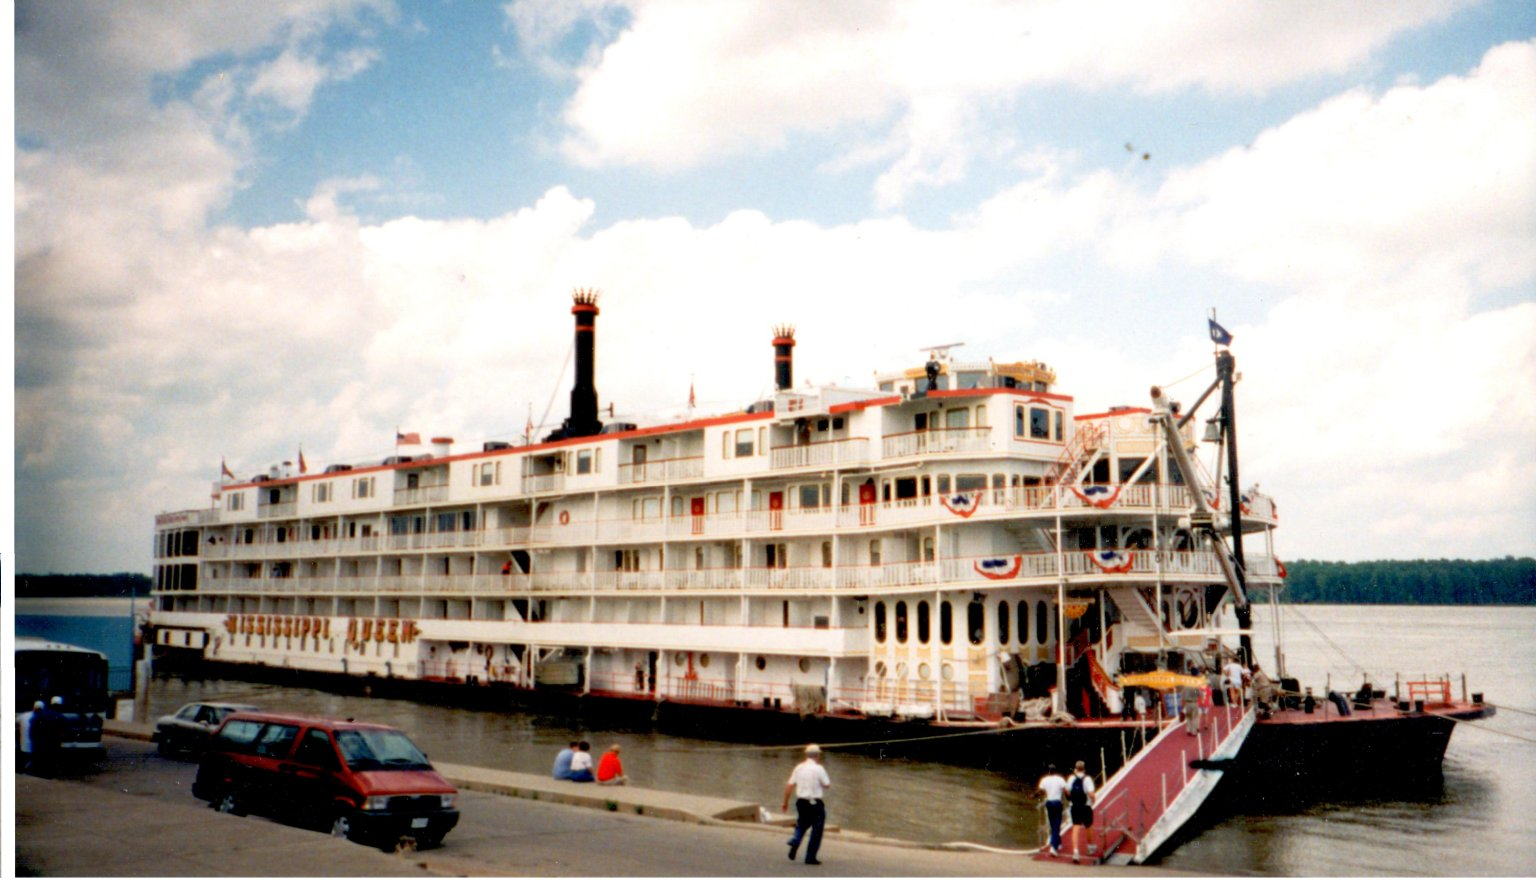 Mississippi Queen, Riverboat, Paducah